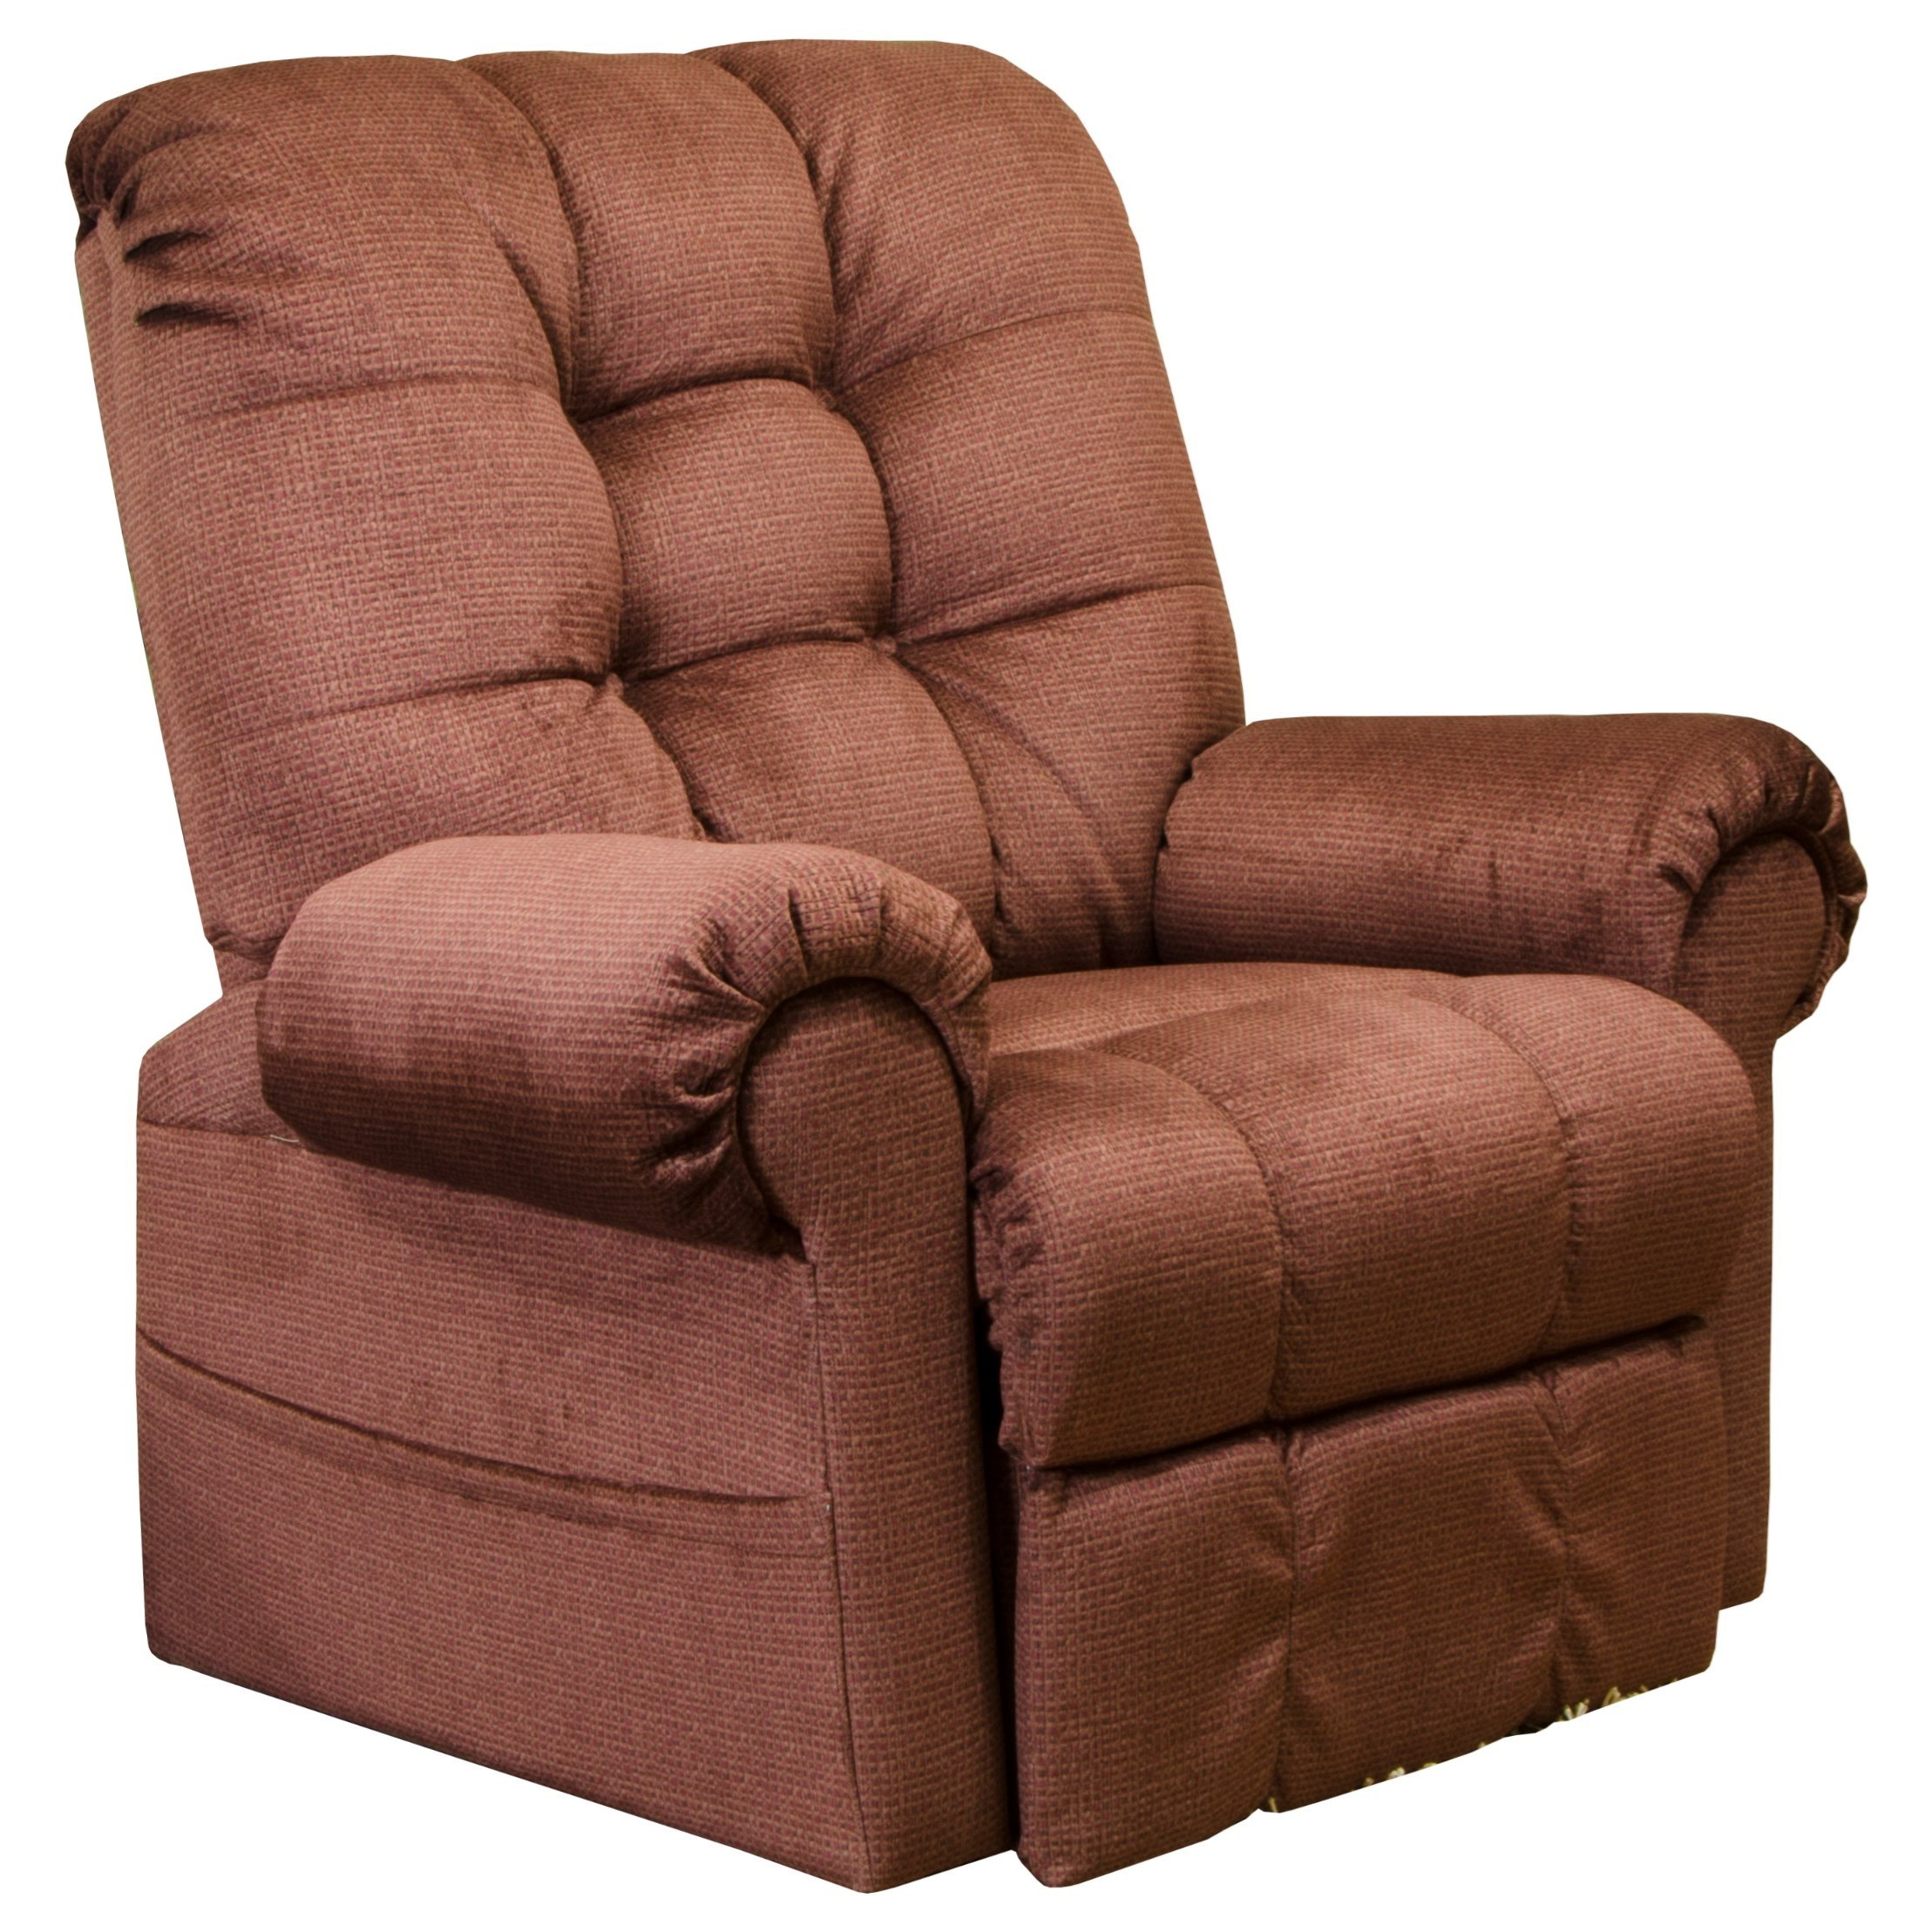 Pow'r Lift Full Layout Chaise Recliner